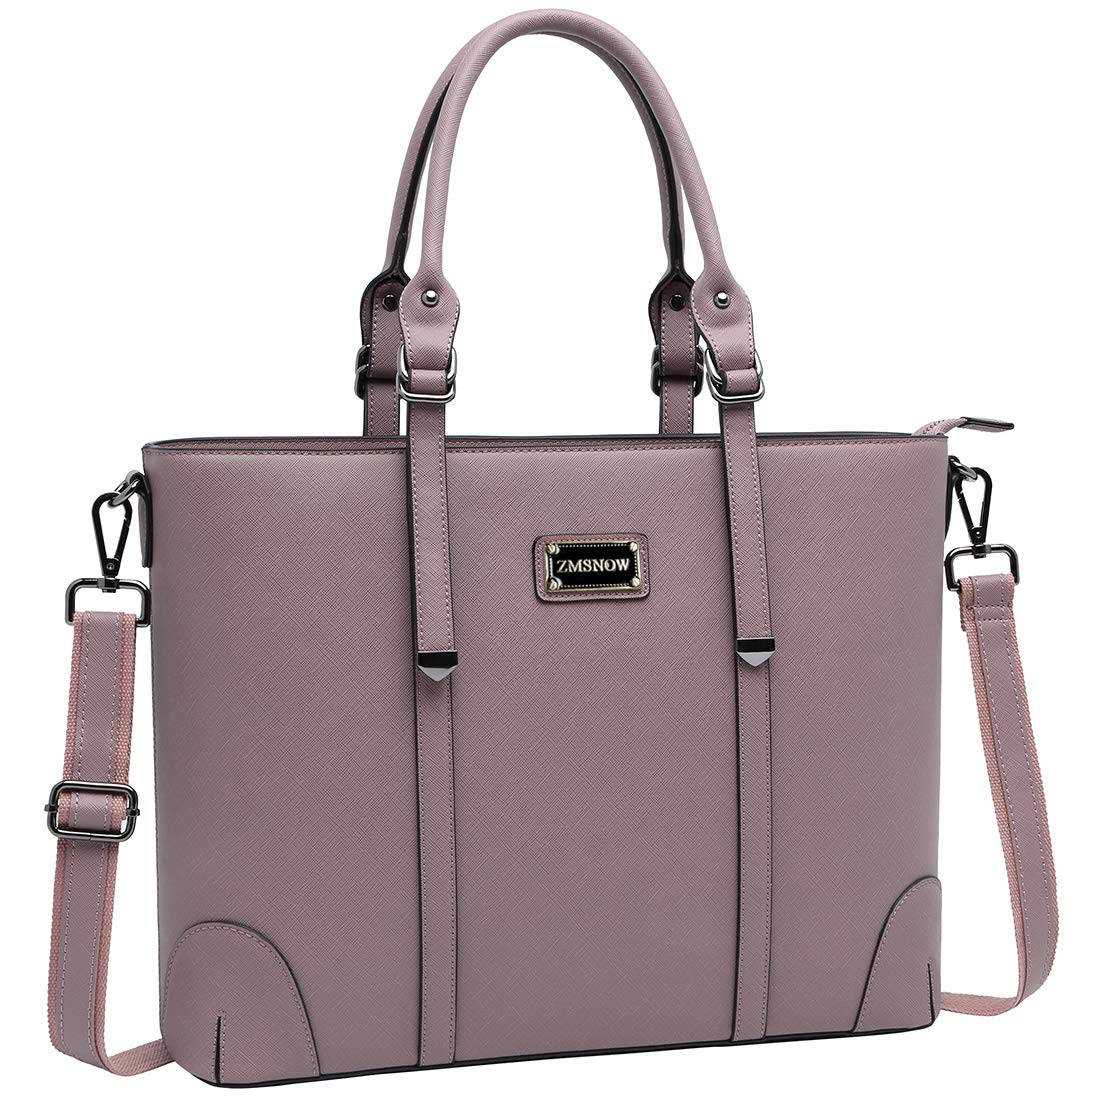 Laptop Bag for Women, Superior Laptop Tote Bag Computer Briefcase Fits up to 15.6 Inch Laptop for Women Work Office Business School Travel by ZMSnow (Purple)